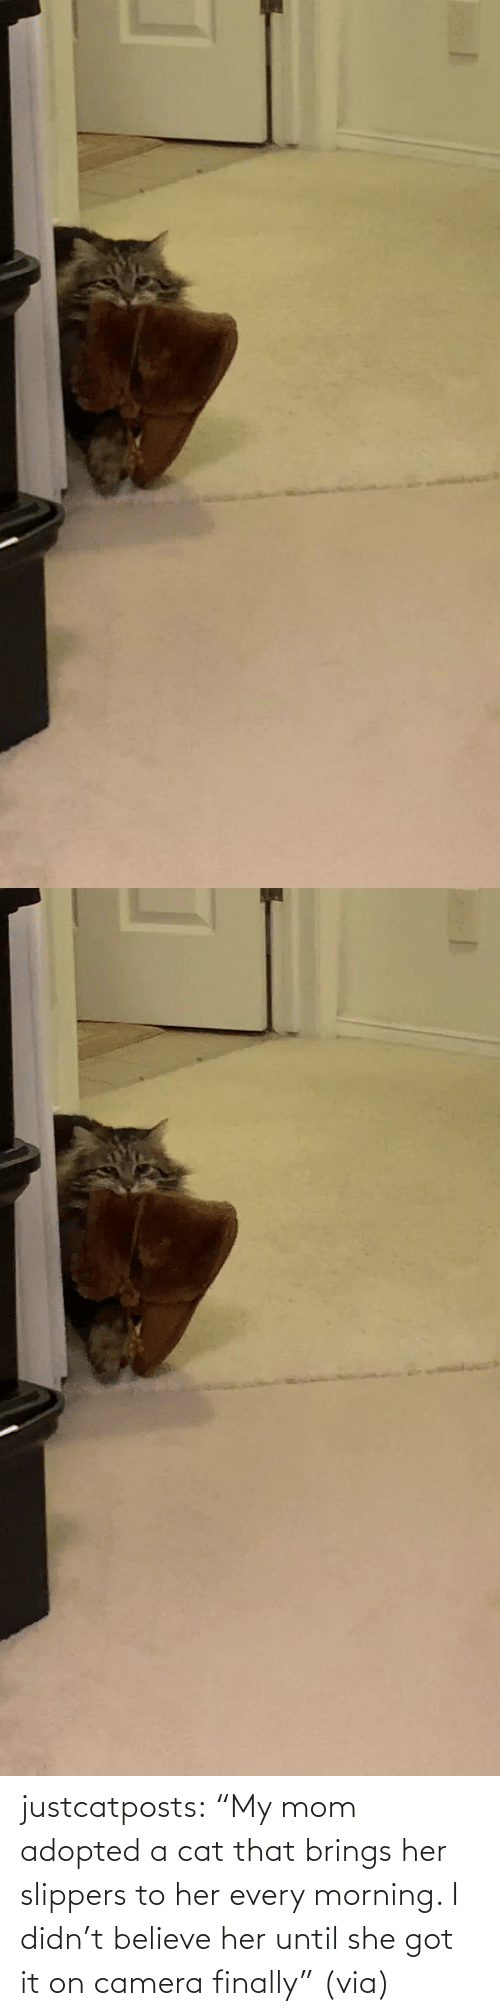 "Until: justcatposts:  ""My mom adopted a cat that brings her slippers to her every morning. I didn't believe her until she got it on camera finally"" (via)"